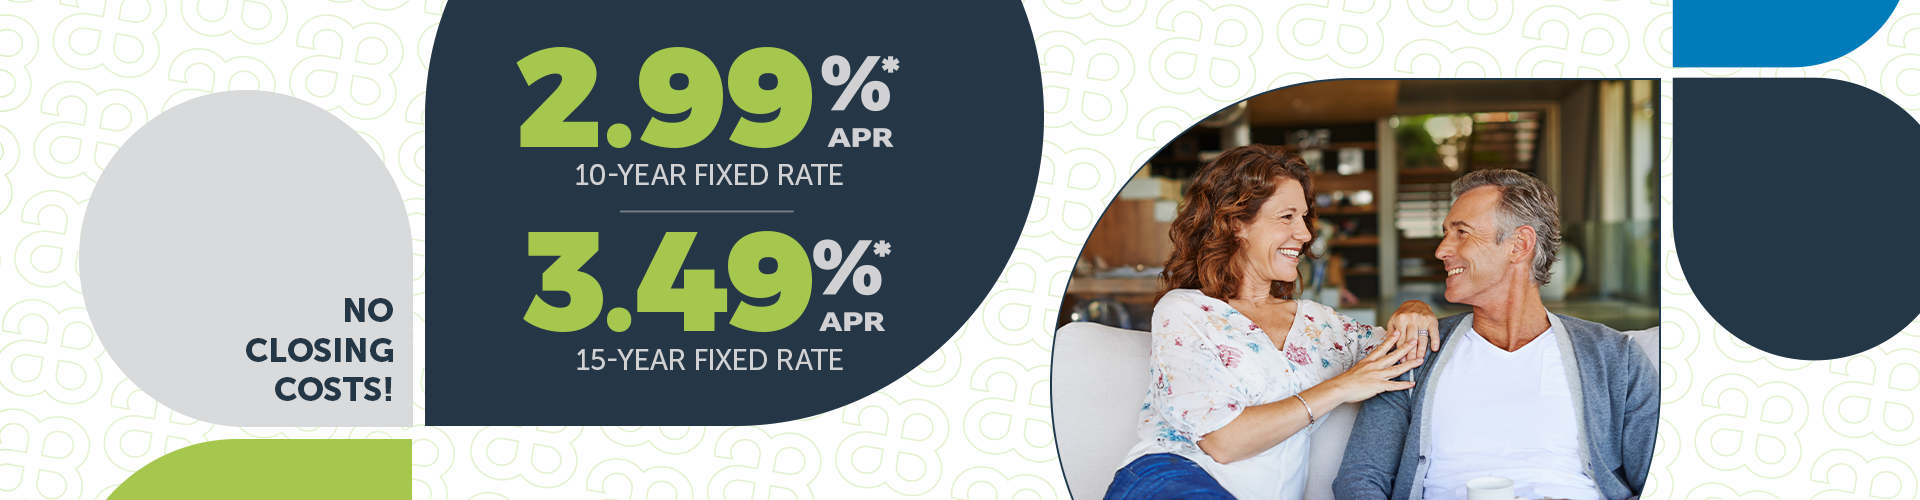 10 & 15 Year Fixed Rate Mortgages | Andover Bank